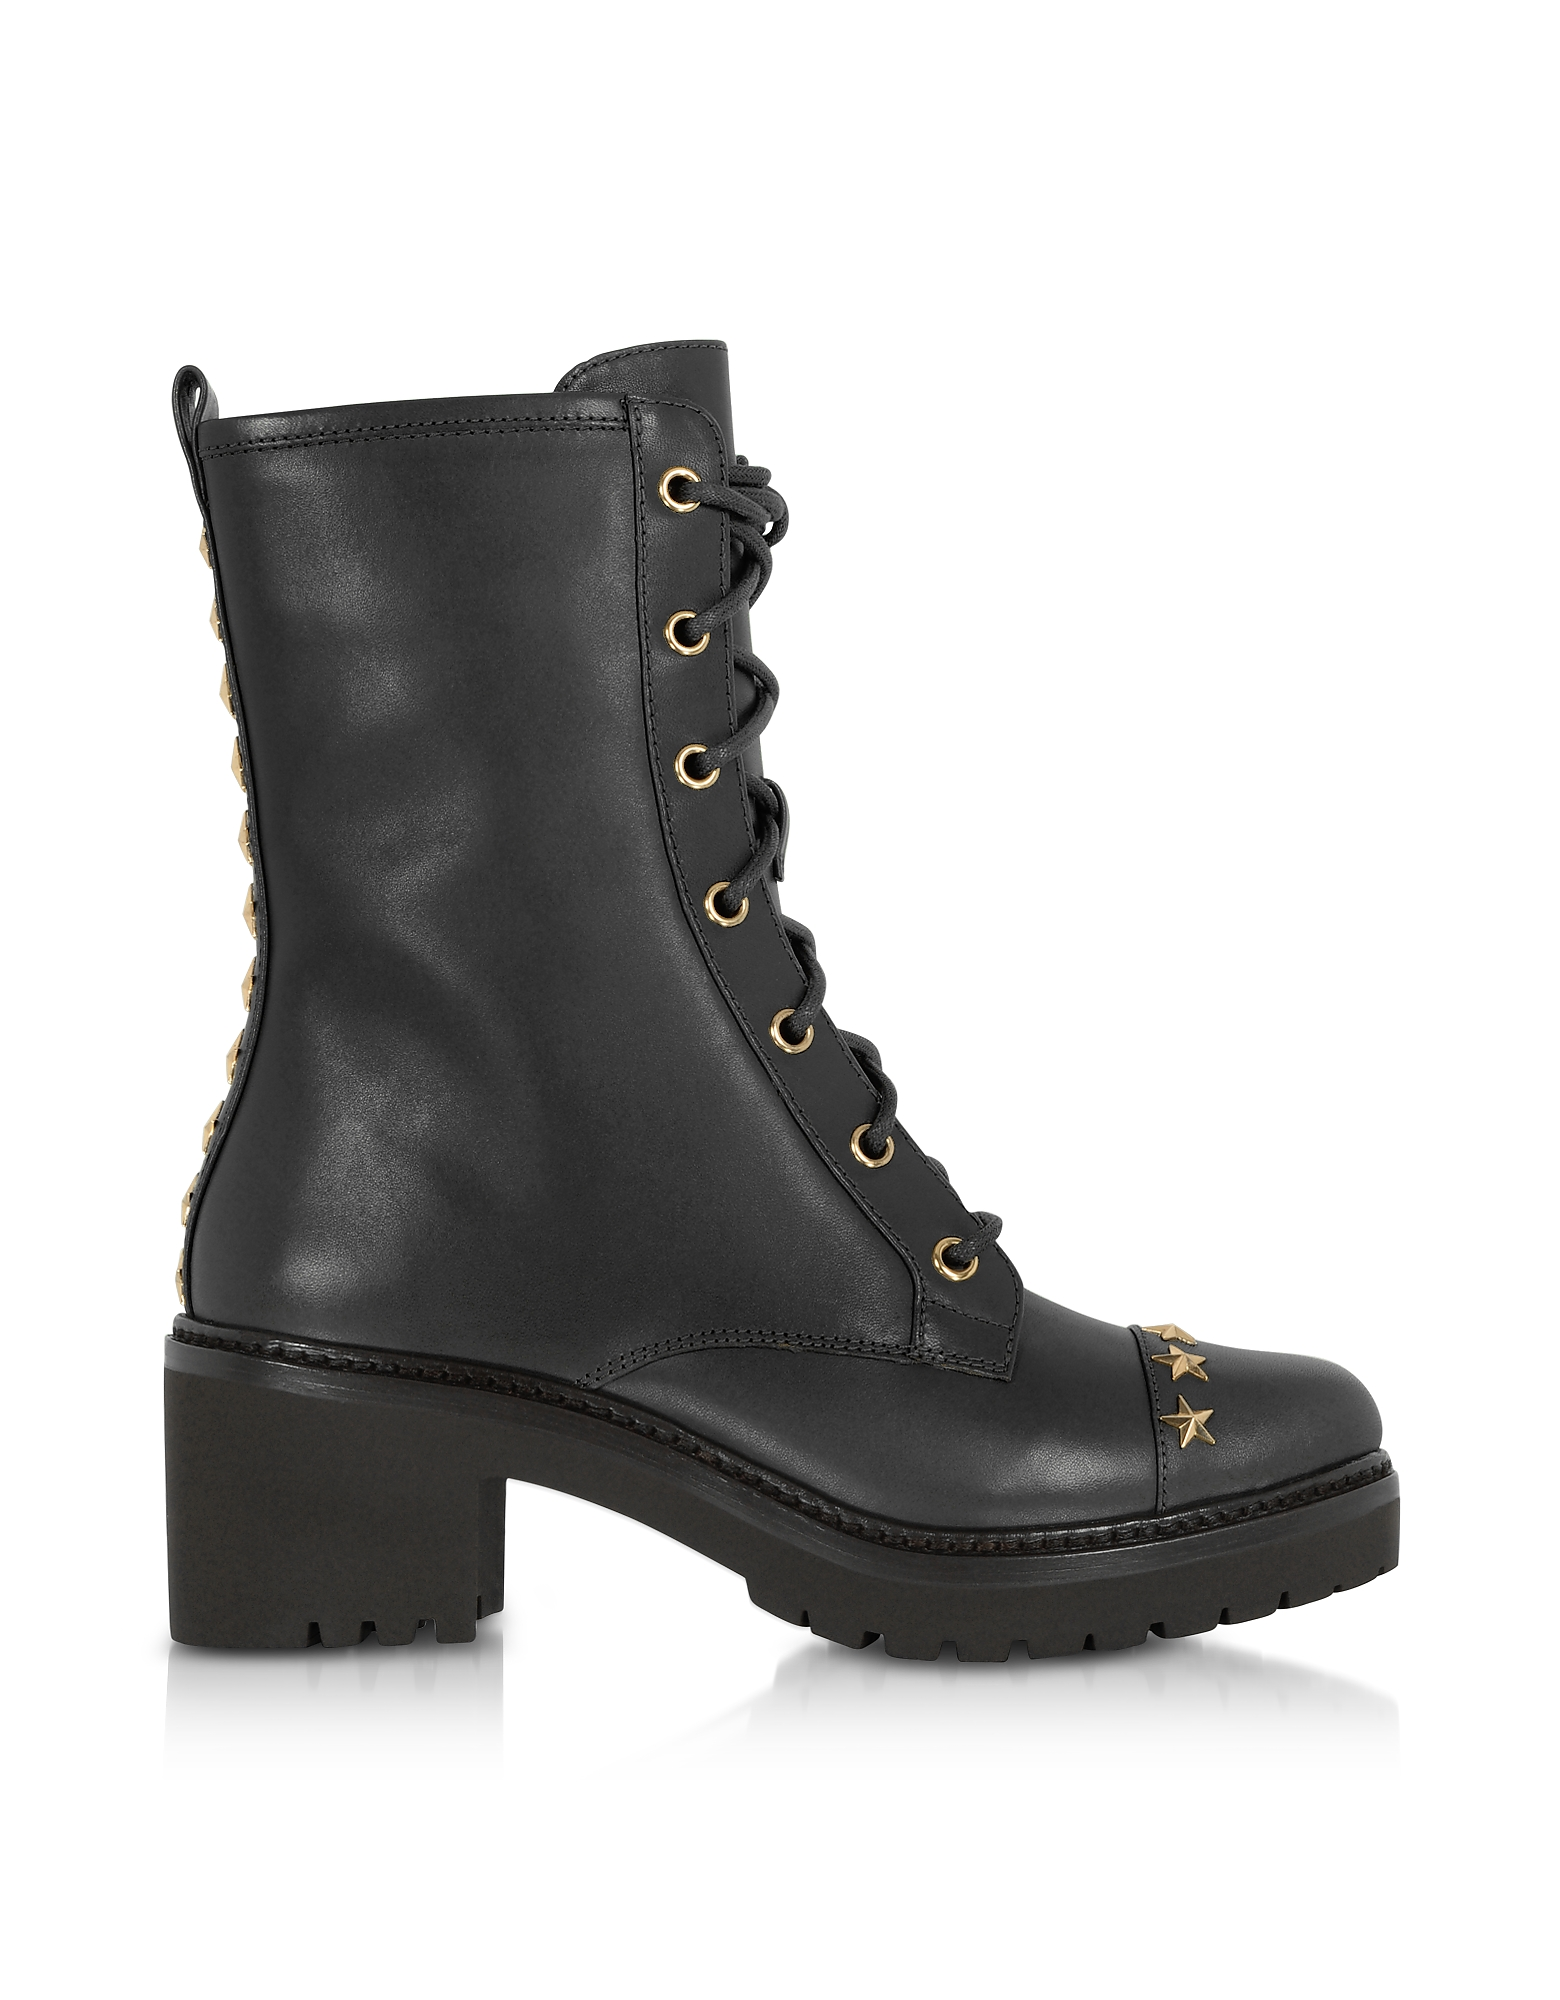 Michael Kors Shoes, Cody Black Leather Mid-Heel Boots w/Star Studs